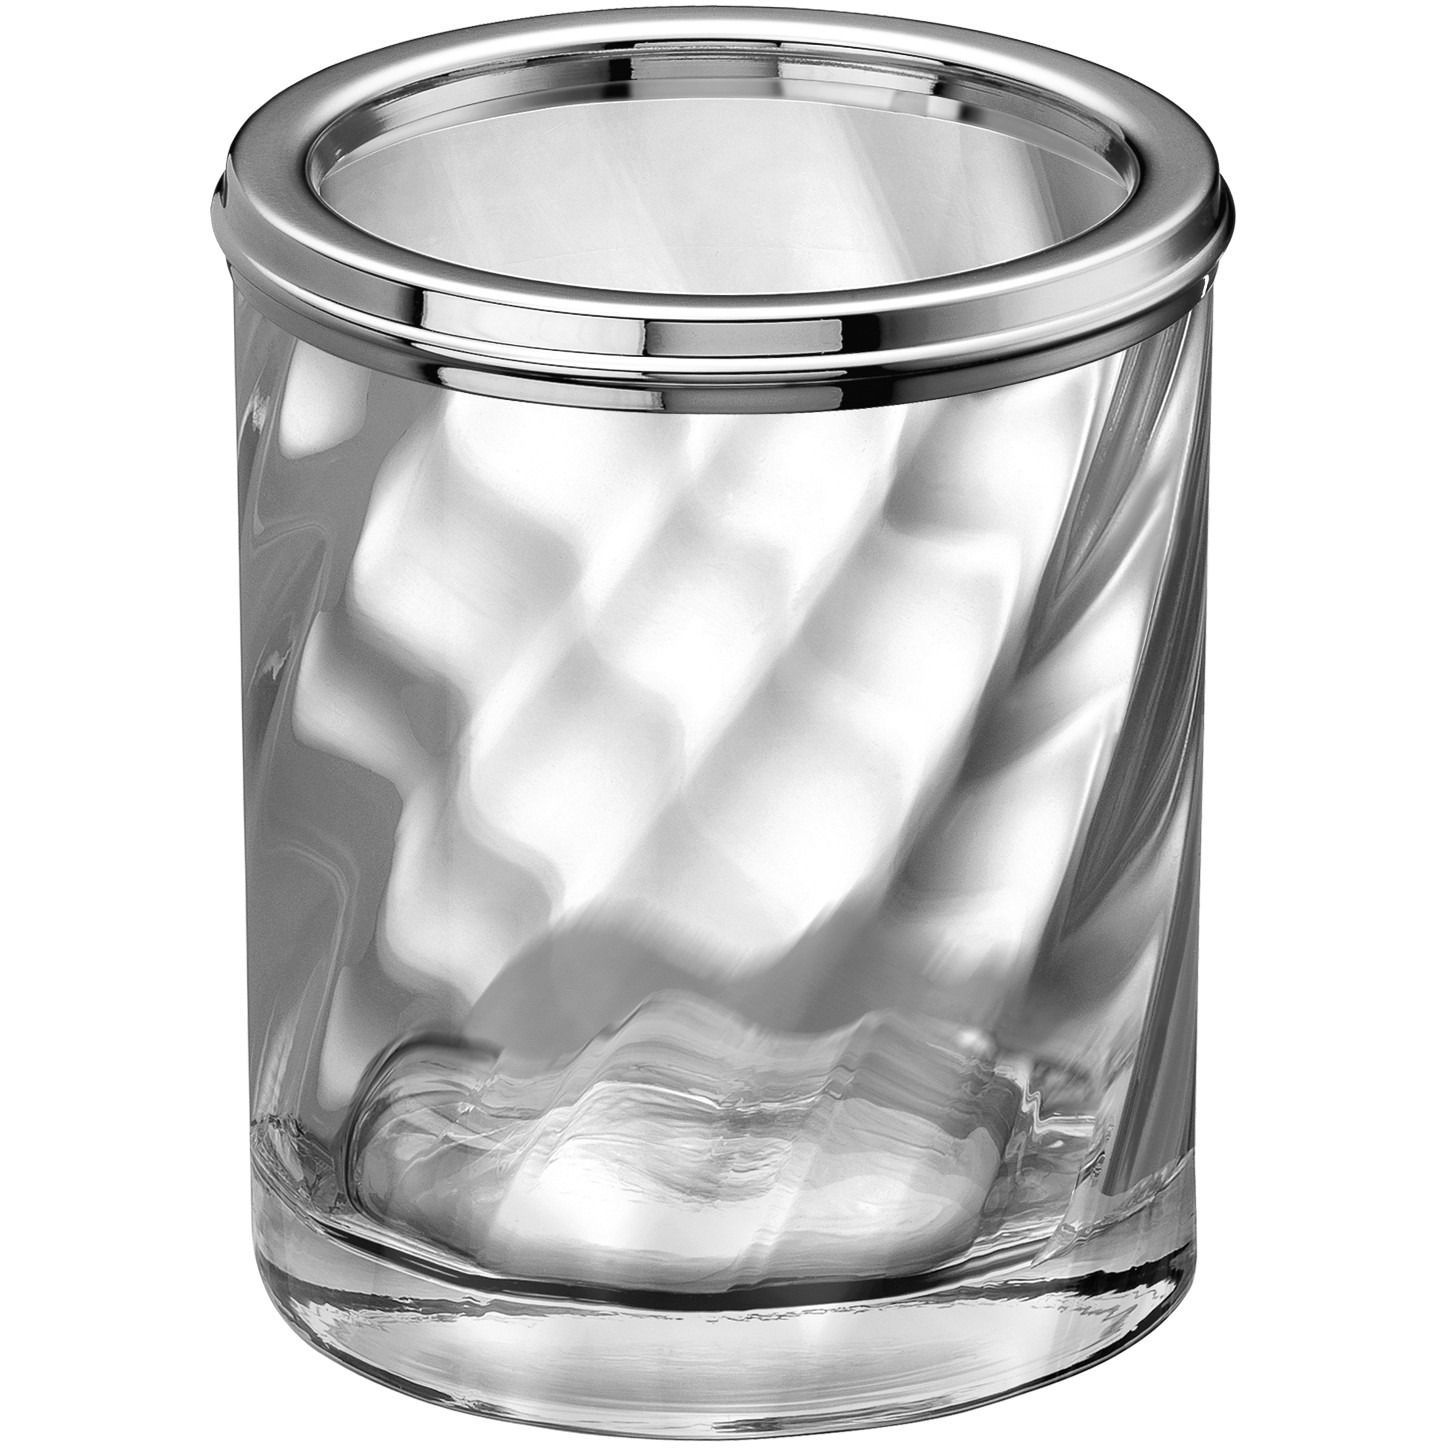 Spiral Clear Glass Round Table Toothbrush Toothpaste Holder Bathroom Tumbler